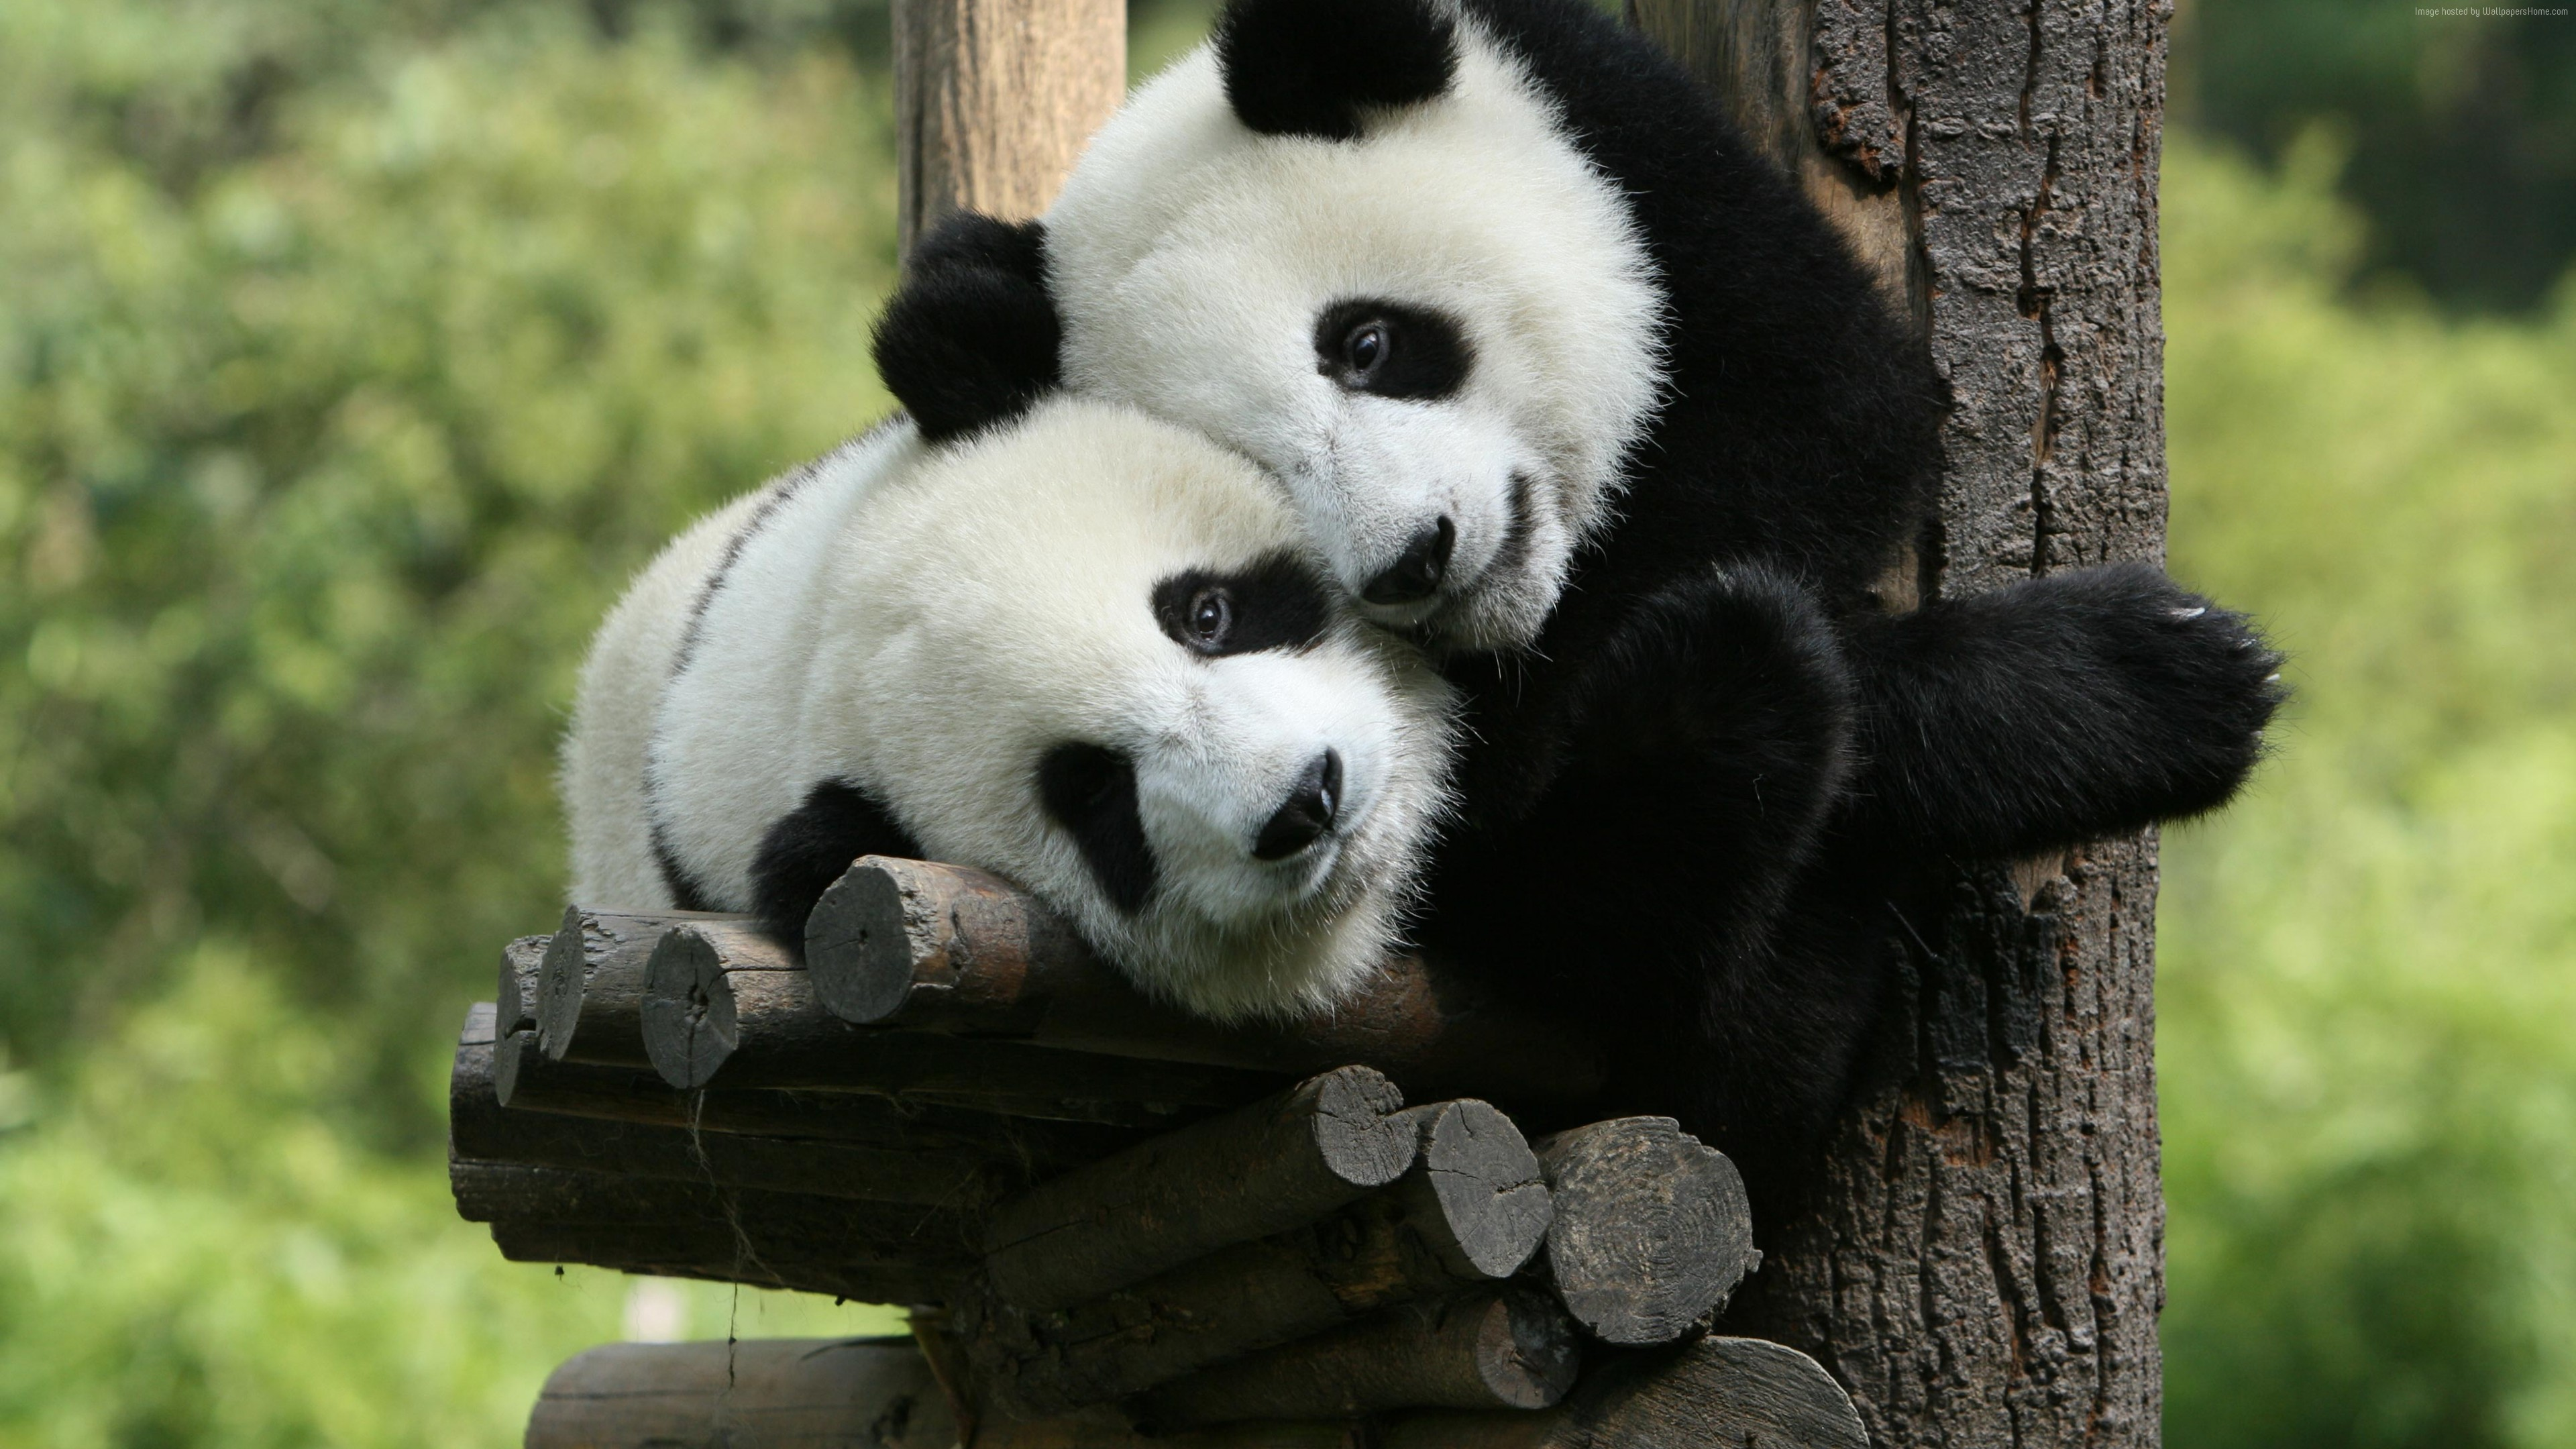 Wallpaper Panda, Giant Panda Zoo, China, Cute animals, Animals